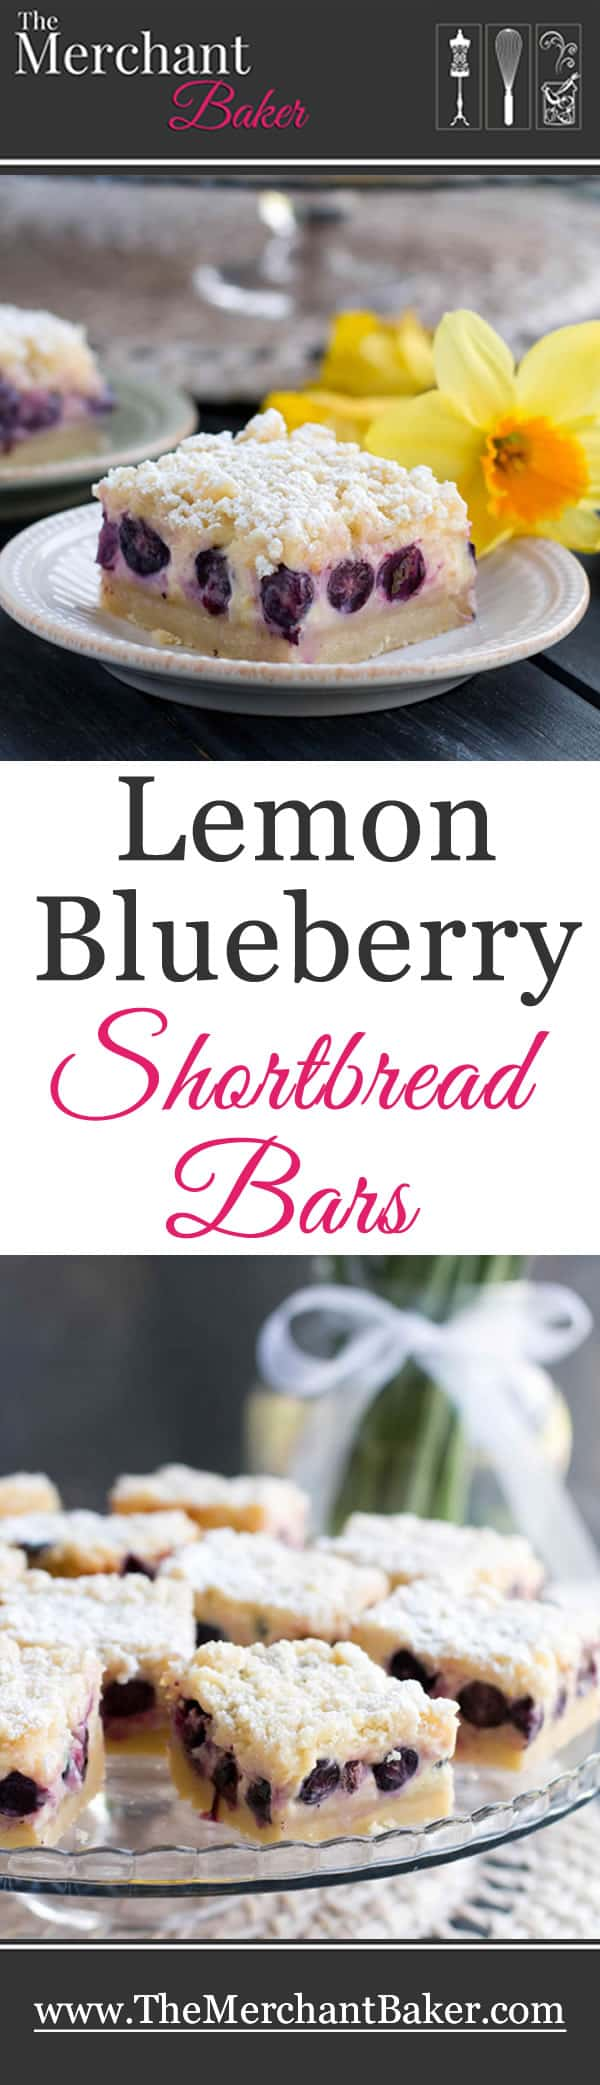 Lemon Blueberry Shortbread Bars